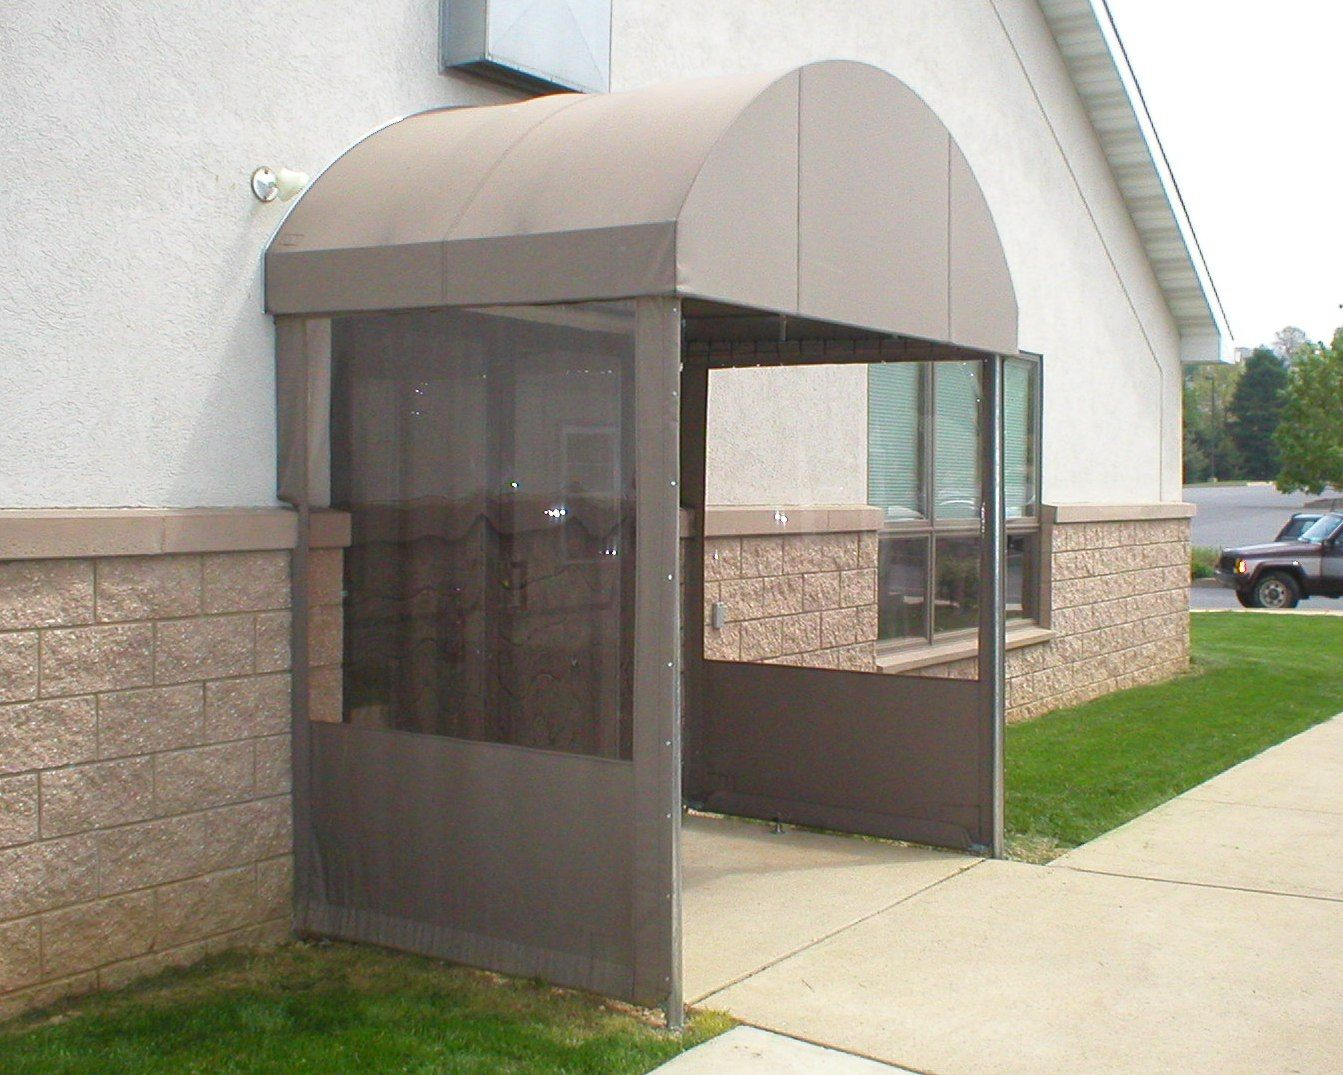 Lititz Pa Awning With Vestibule Clear Panel Sides Keep Out The Winter Weather And Wind Entrance Vestibule Awning Canopy